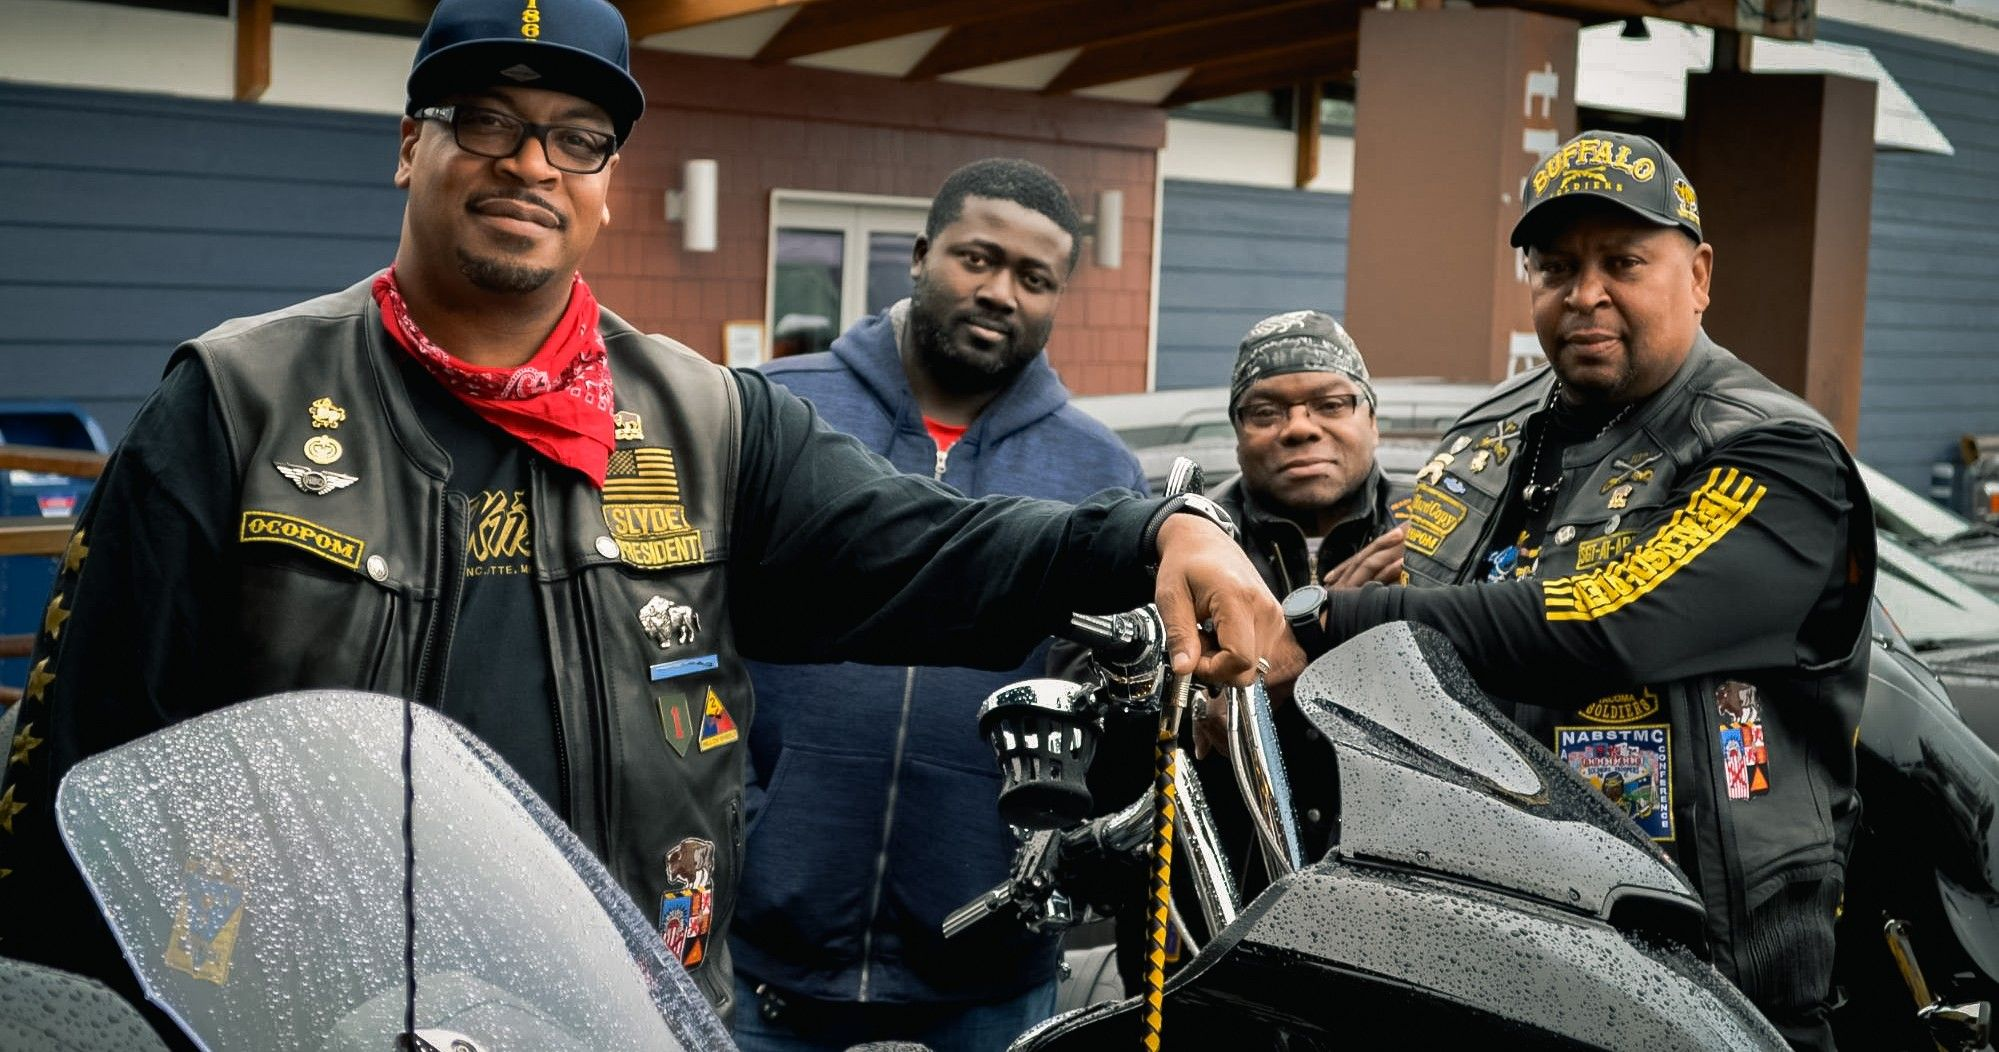 Here's What The Buffalo Soldiers Motorcycle Club Rides